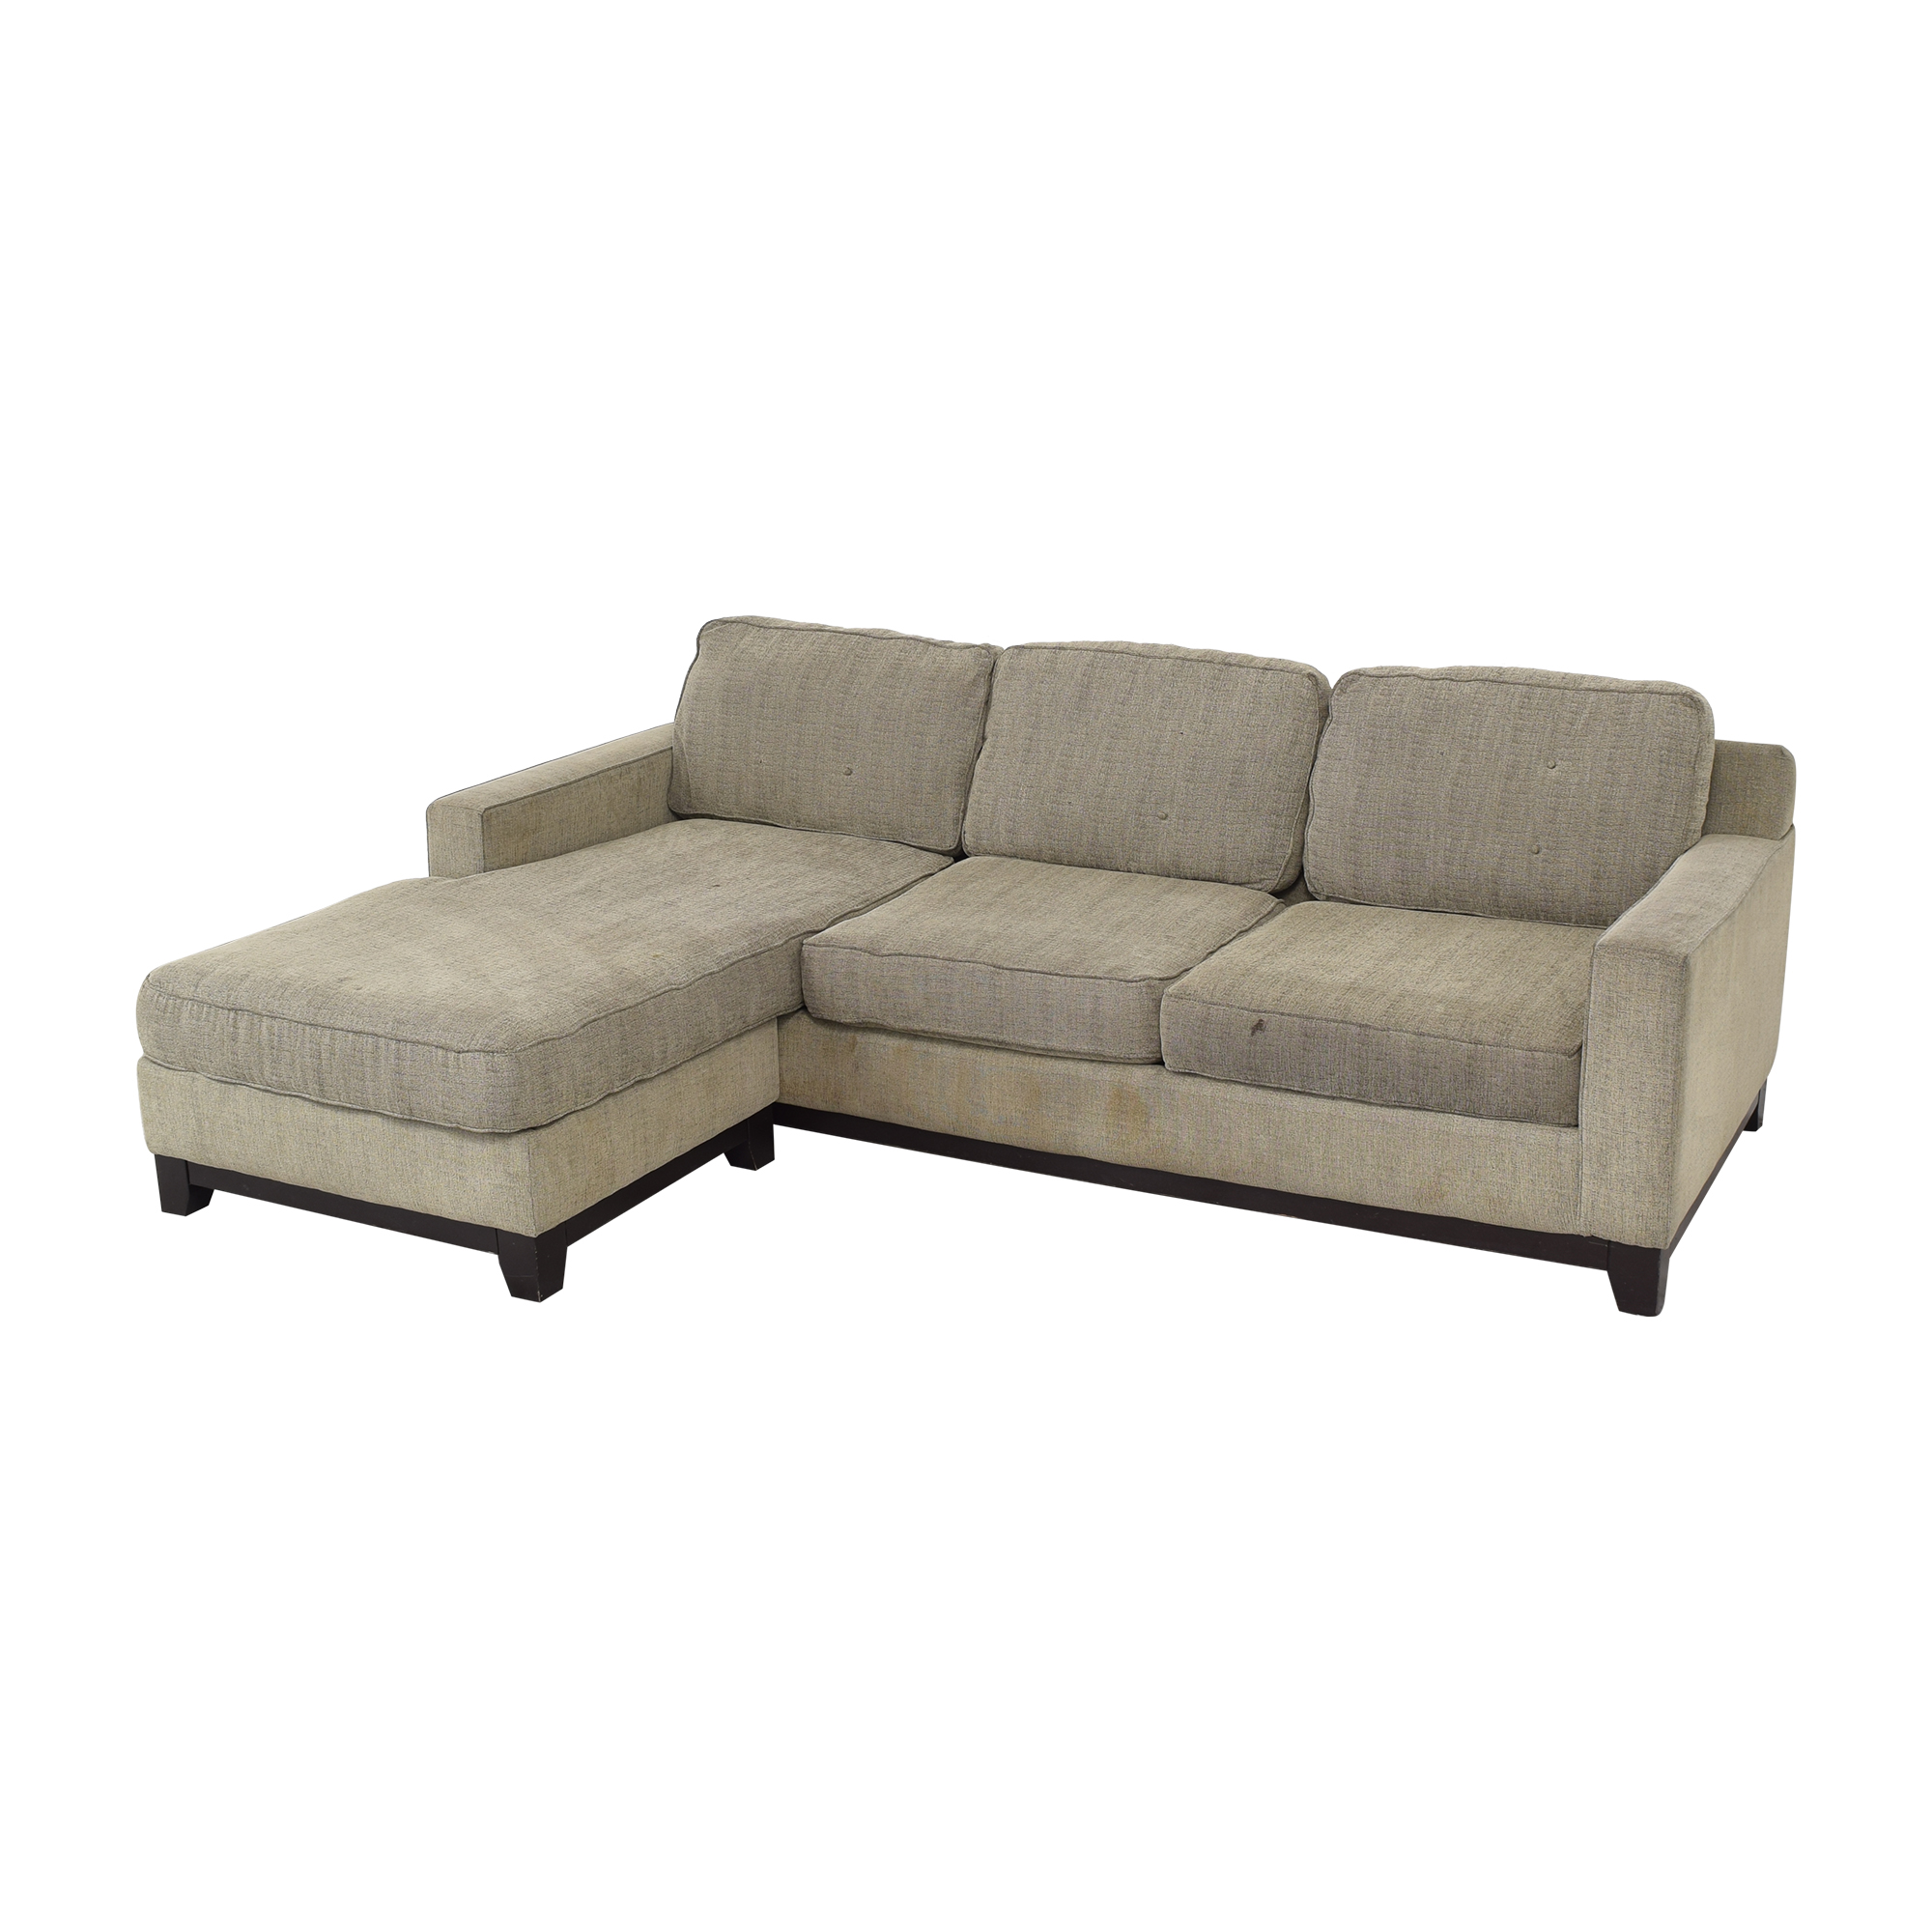 Macy's Jonathan Louis Chaise Sectional Sofa second hand